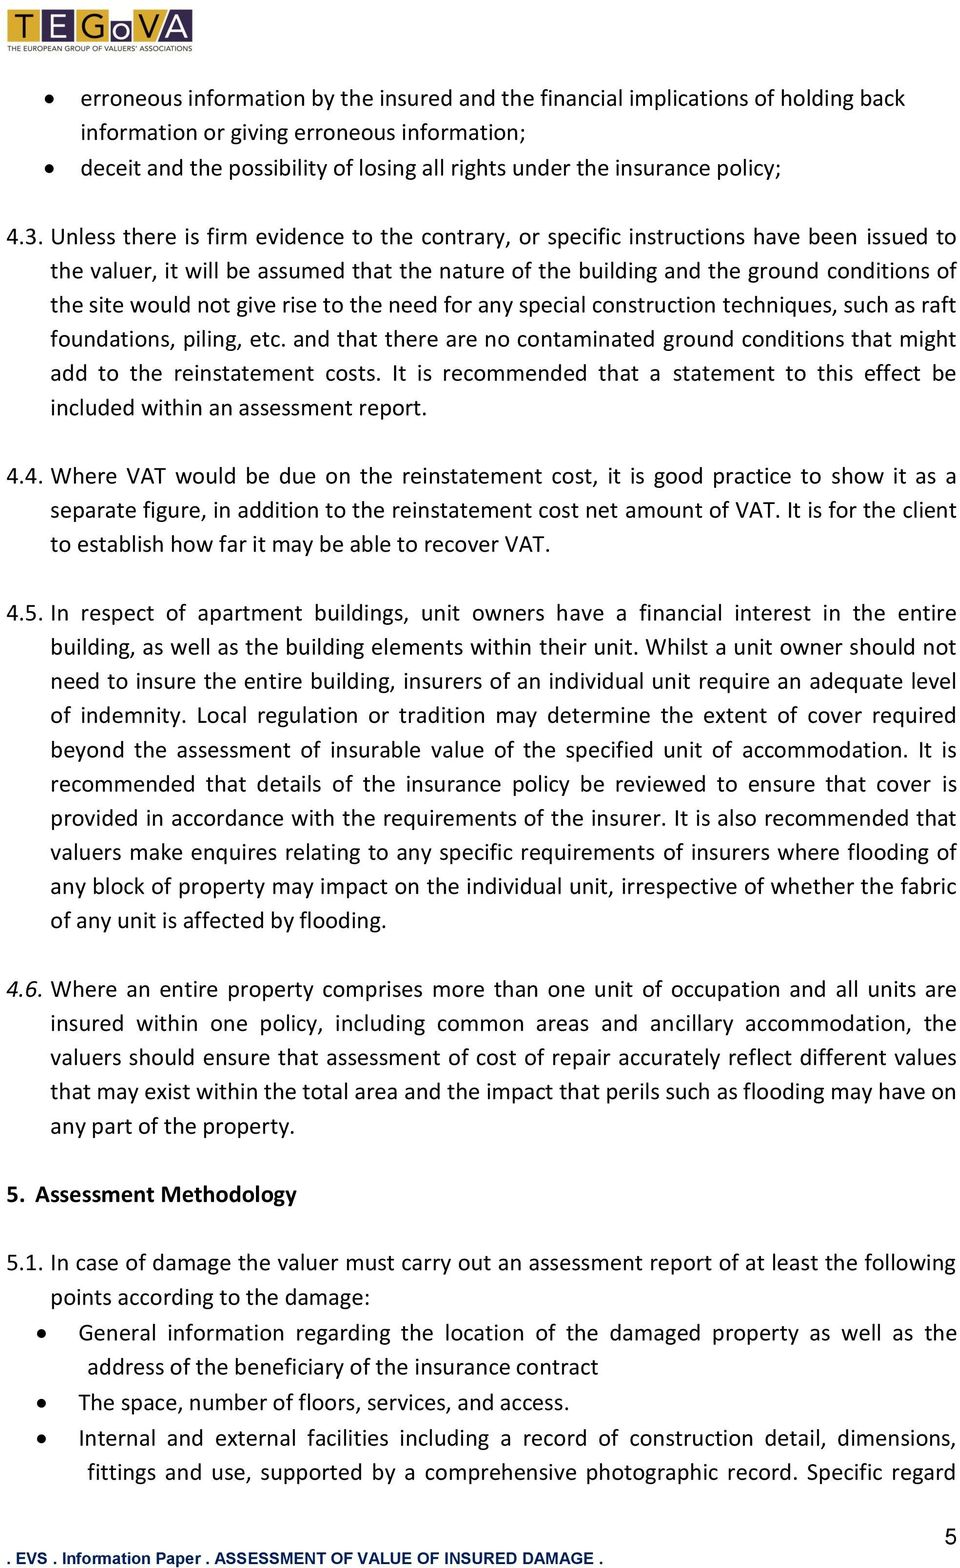 Unless there is firm evidence to the contrary, or specific instructions have been issued to the valuer, it will be assumed that the nature of the building and the ground conditions of the site would